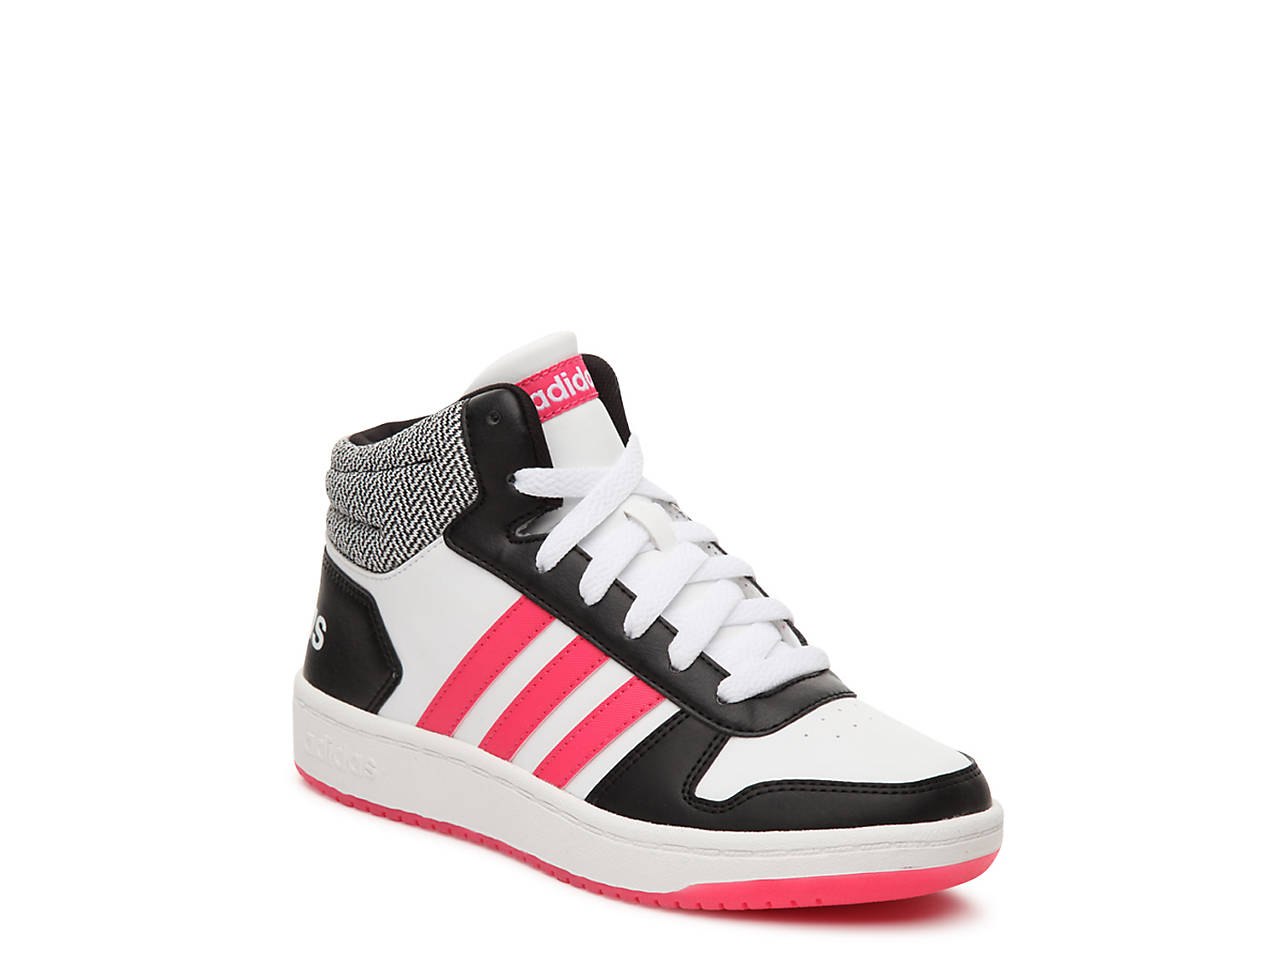 bbe0fa48d31b adidas Hoops Mid 2 Toddler   Youth High-Top Sneaker Kids Shoes